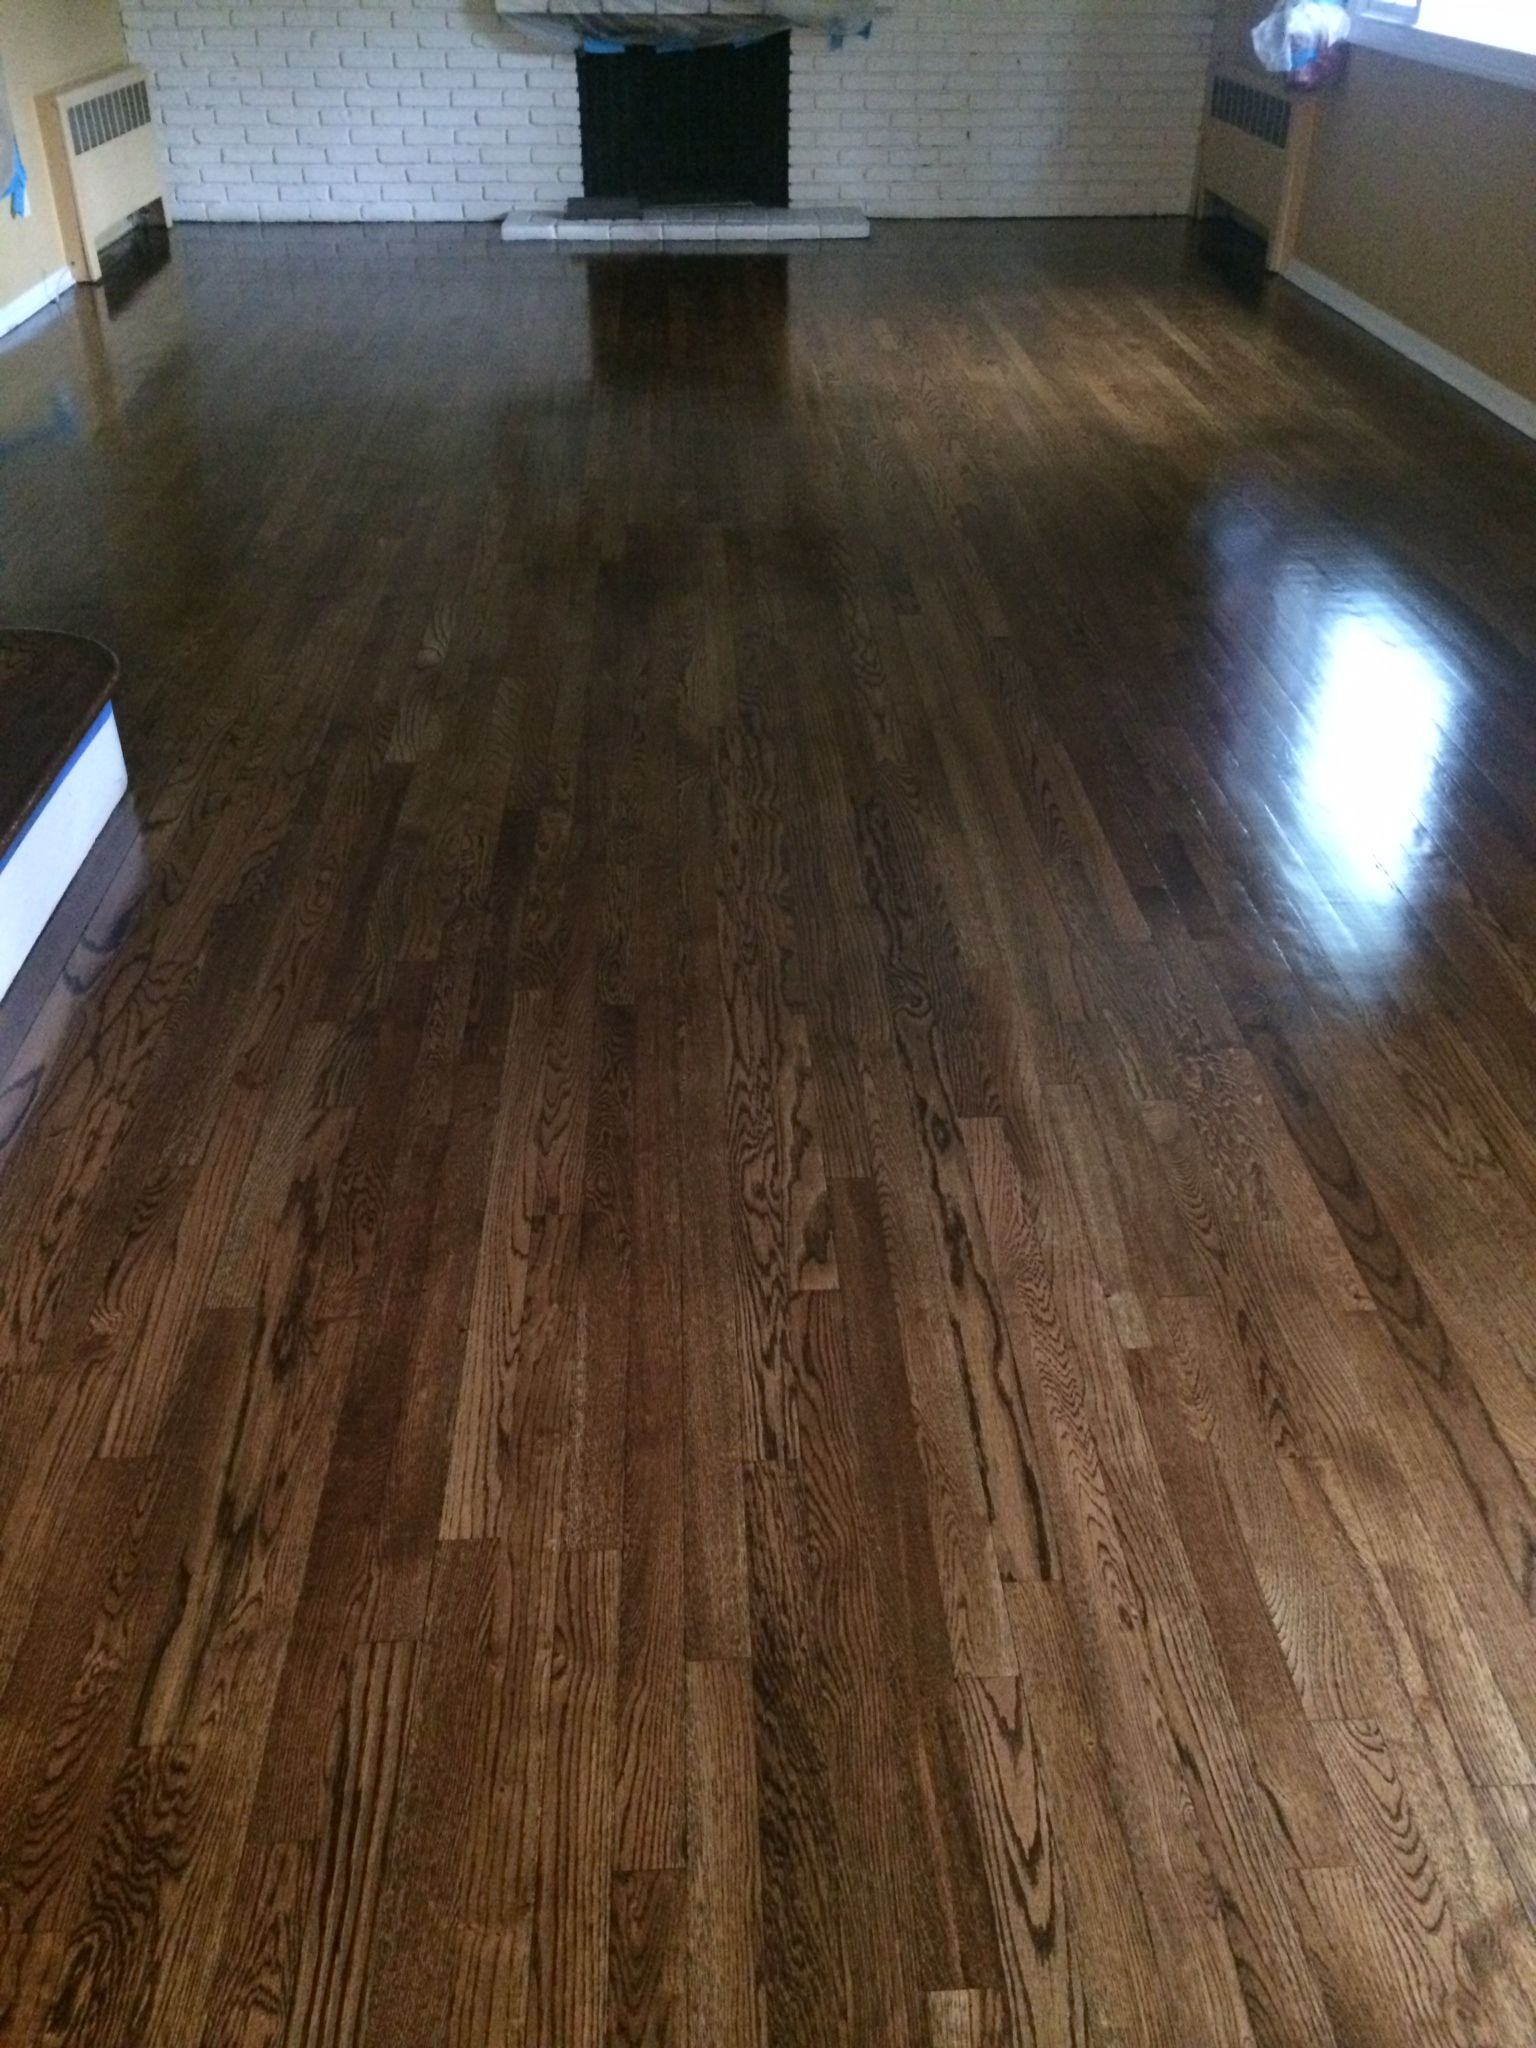 Pin By Jennifer Dickenson On For The Home Hardwood Floor Stain Colors Hardwood Floors Staining Hardwood Floors